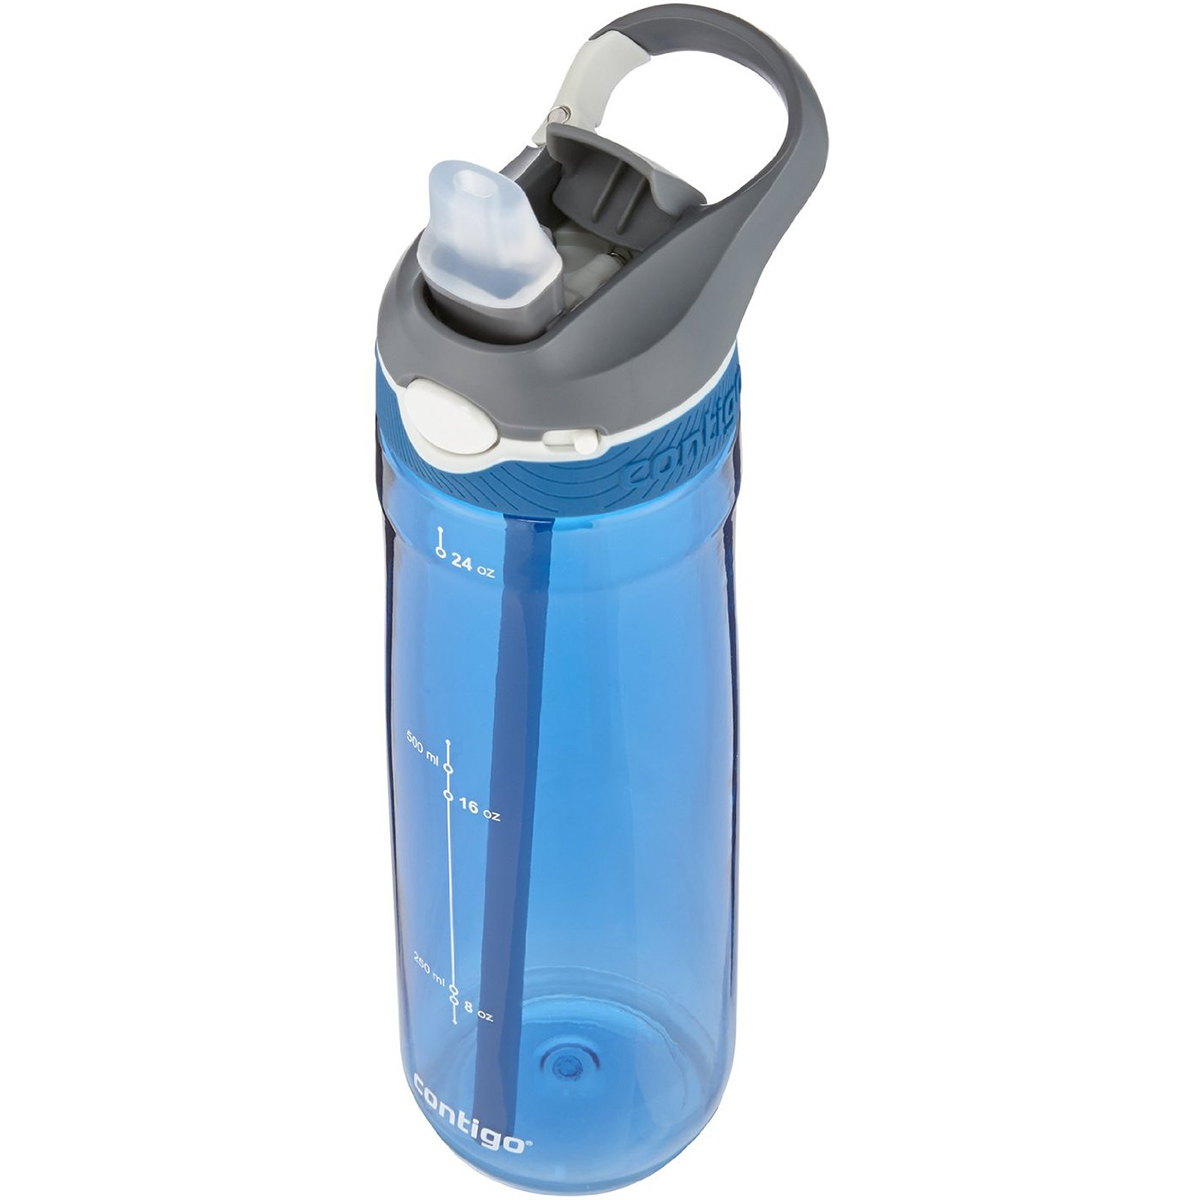 Contigo-24-oz-Ashland-Autospout-Water-Bottle Indexbild 12